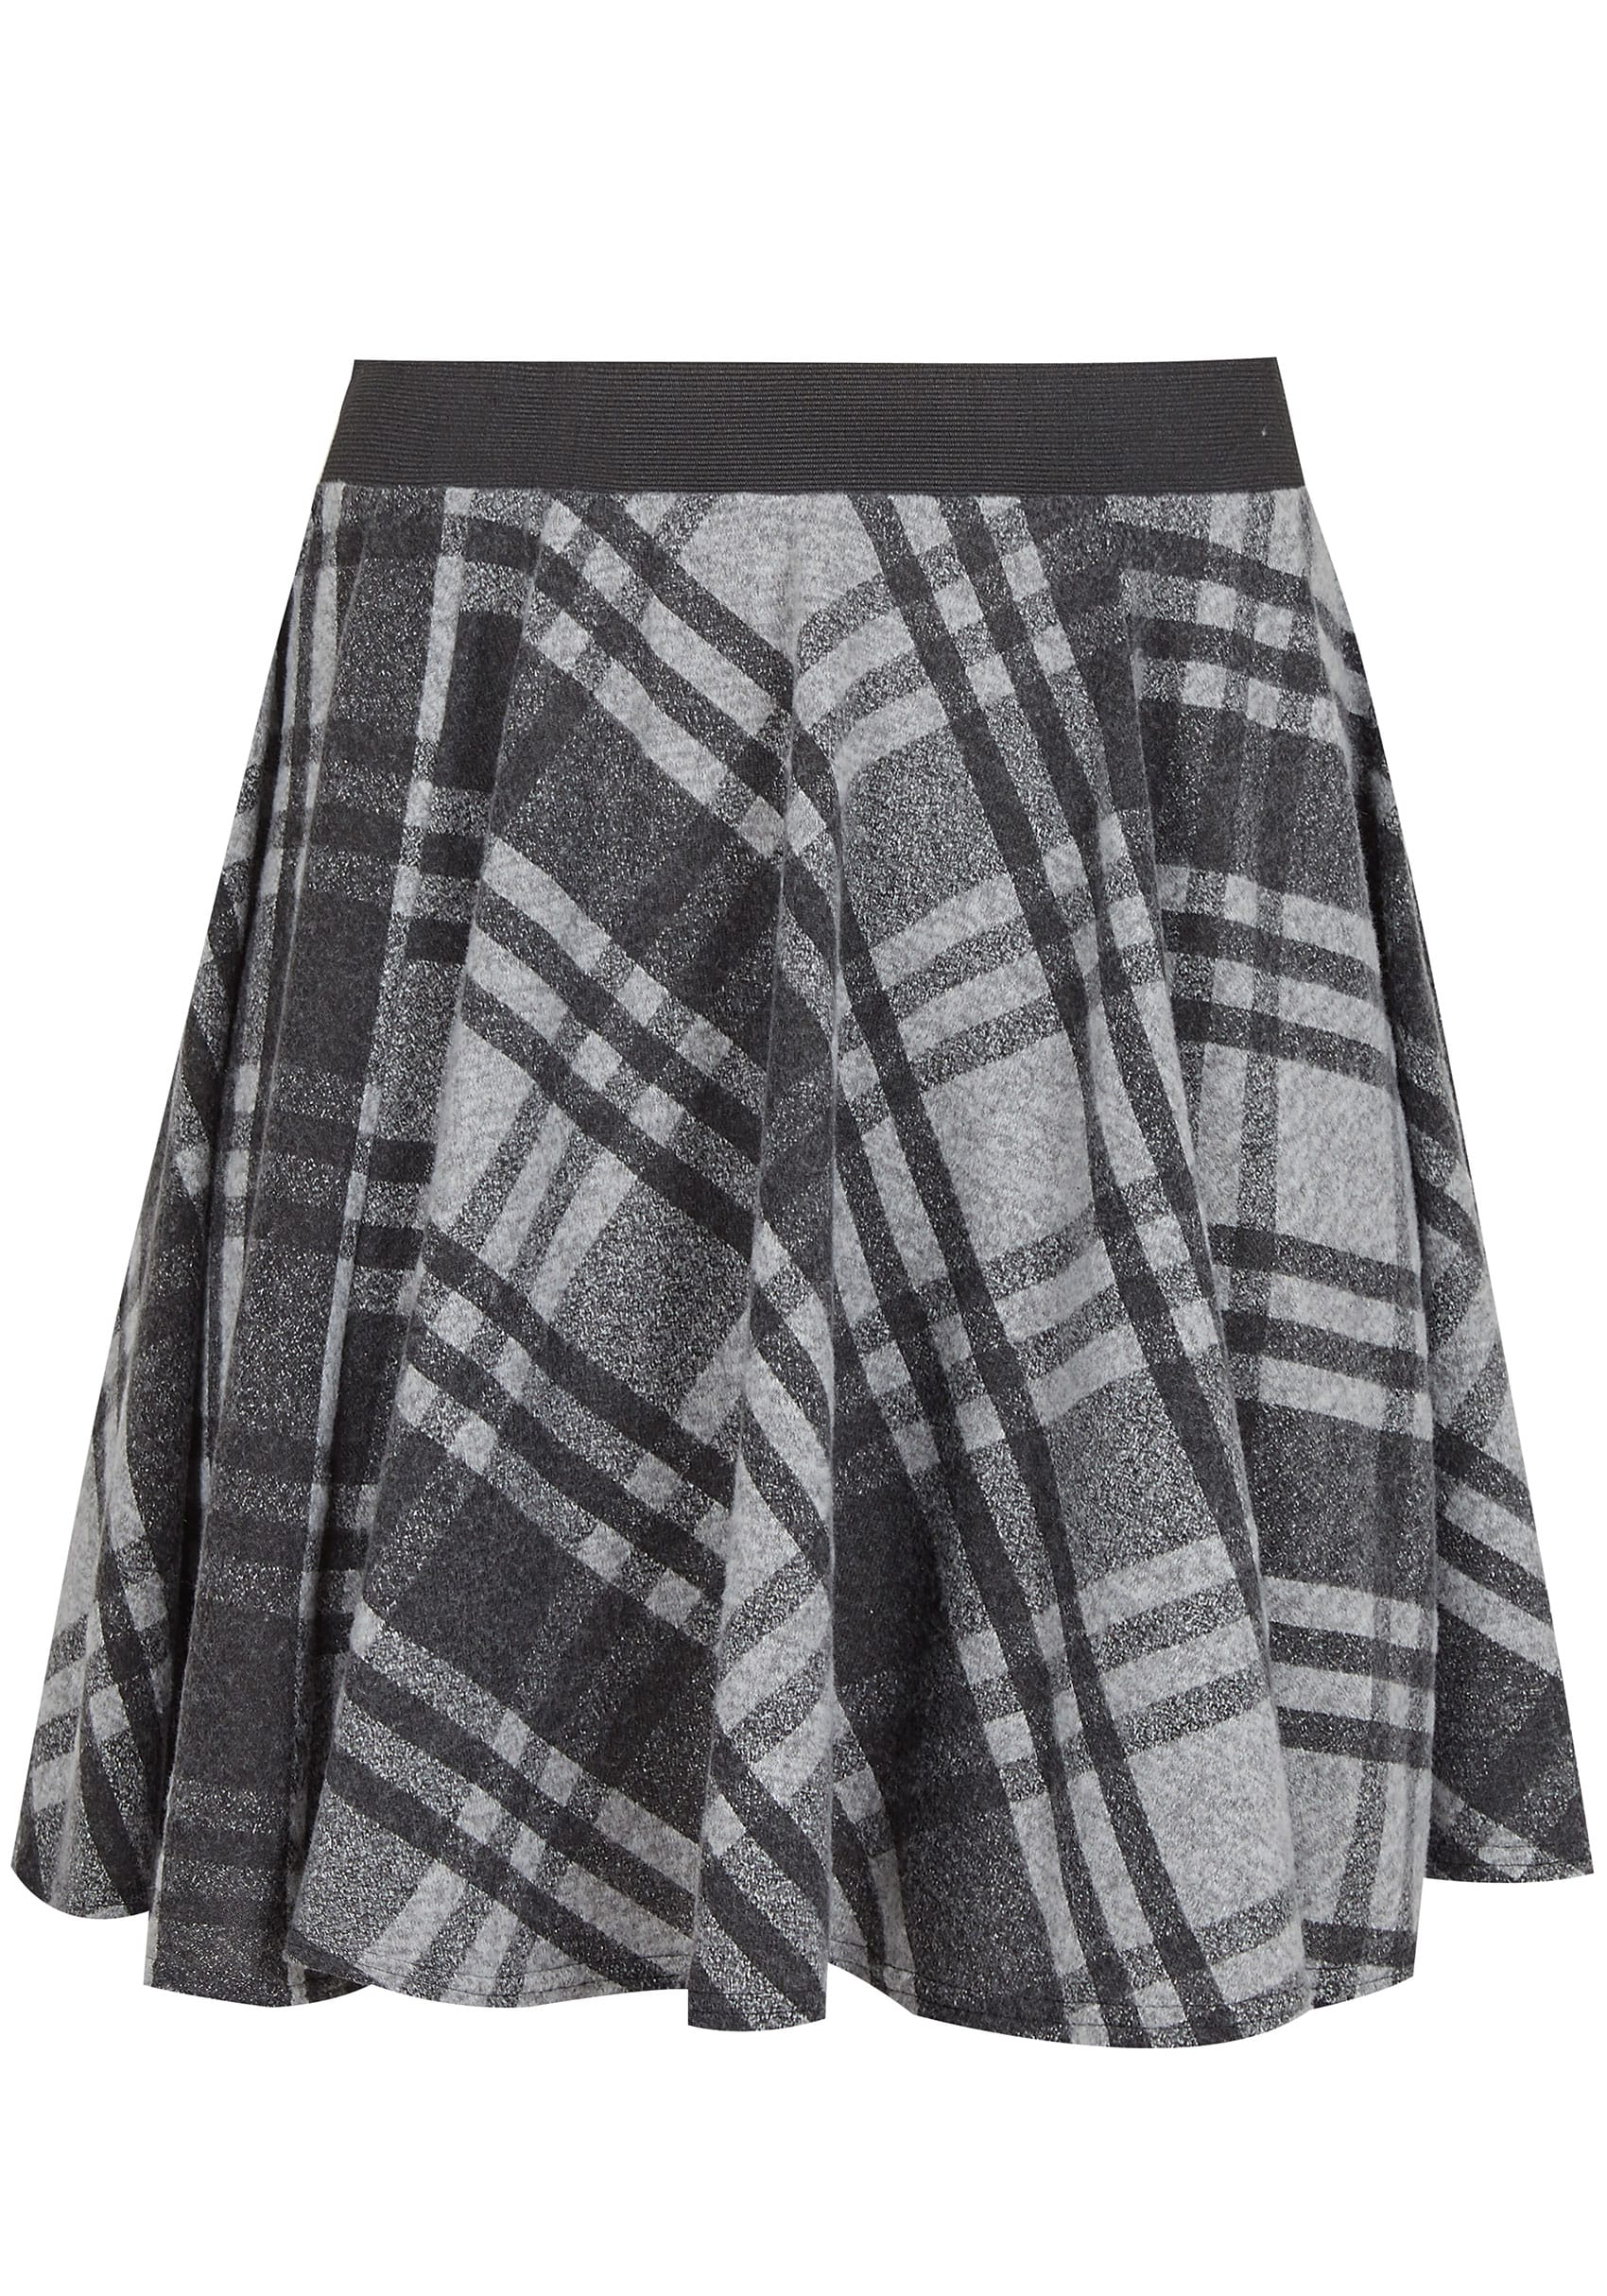 a8ecedc7a2a58 LIMITED COLLECTION Grey Checked Skater Skirt